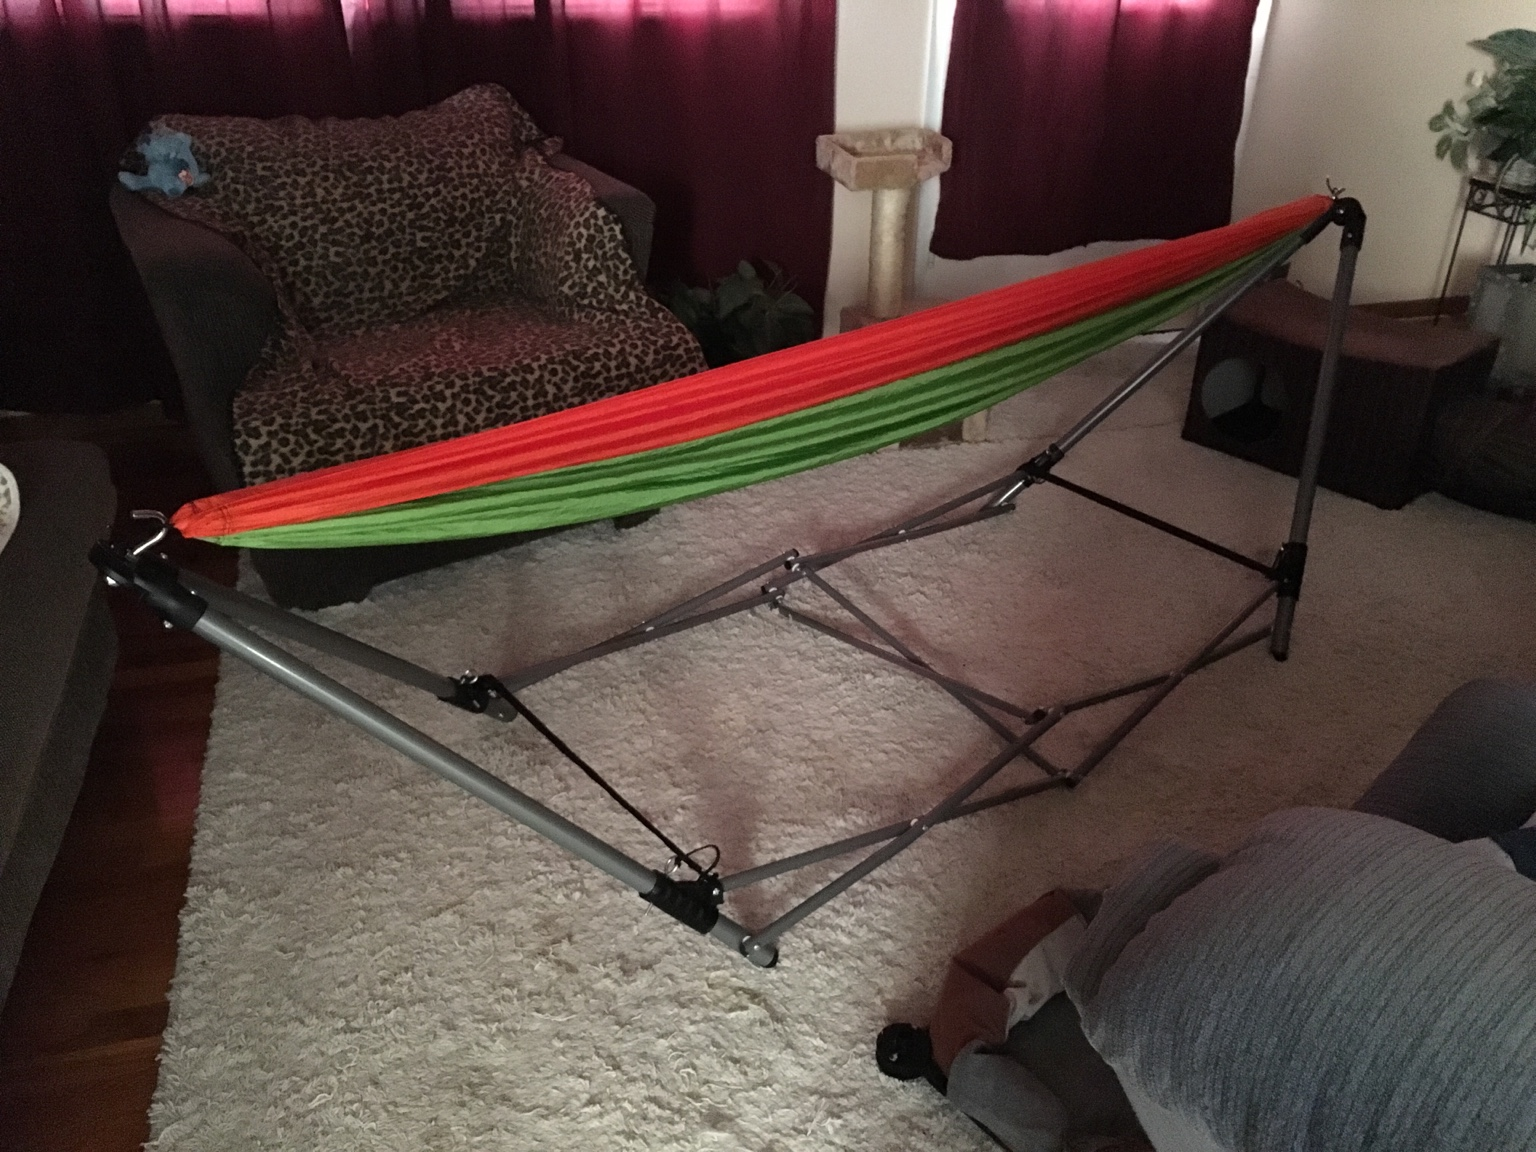 The folding hammock stand comes with a mesh hammock with spreader bars and  a carry bag for the whole thing with shoulder straps and a carry handle. - Gear Guide Folding Hammock Stand With Parachute Hammock.